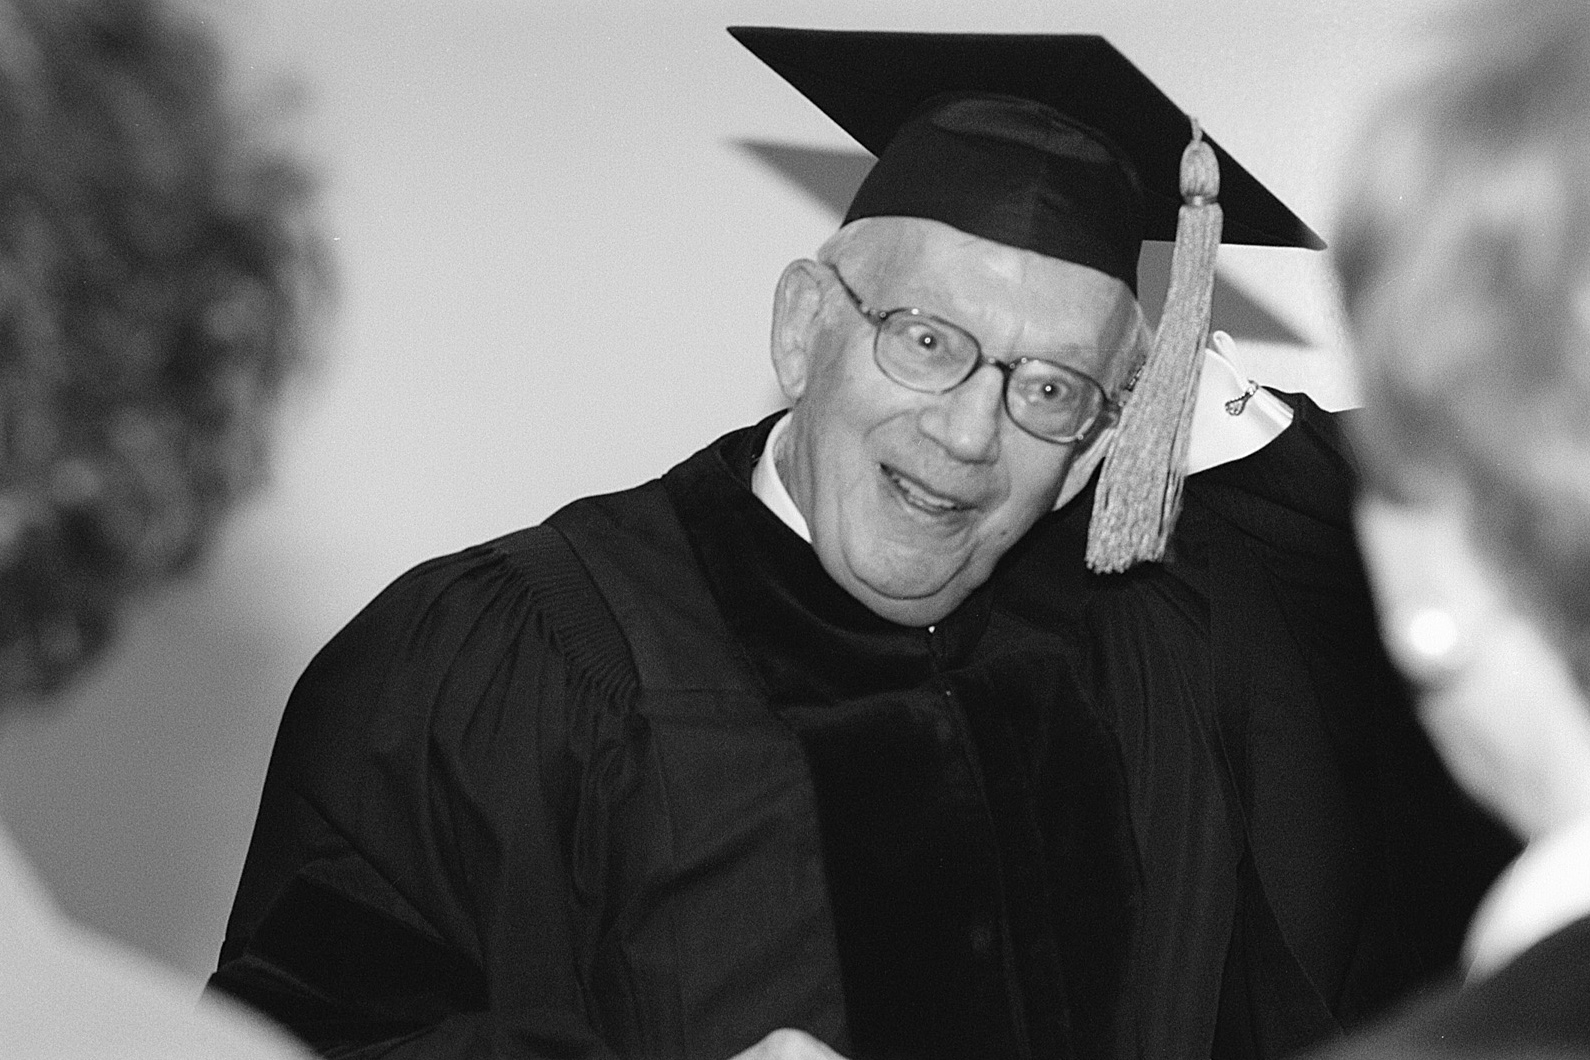 Dr. Raymond Sackler preparing for the 1998 commencement ceremony, where he received an honorary degree. (Richard Boynton/UConn File Photo)